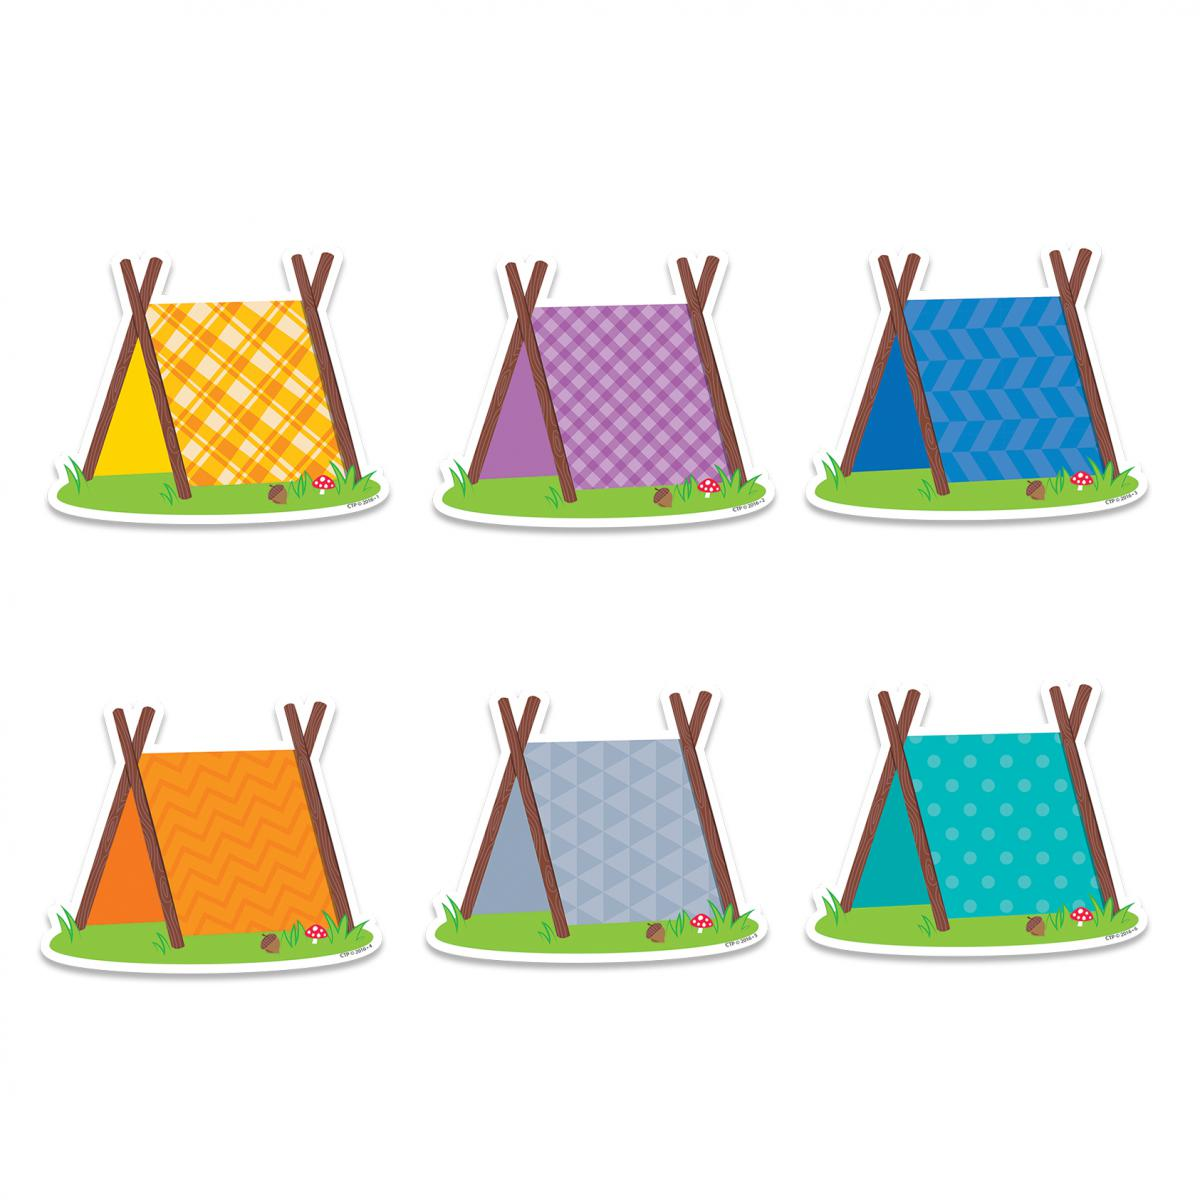 Woodland Friends Pup Tents Cut-Outs